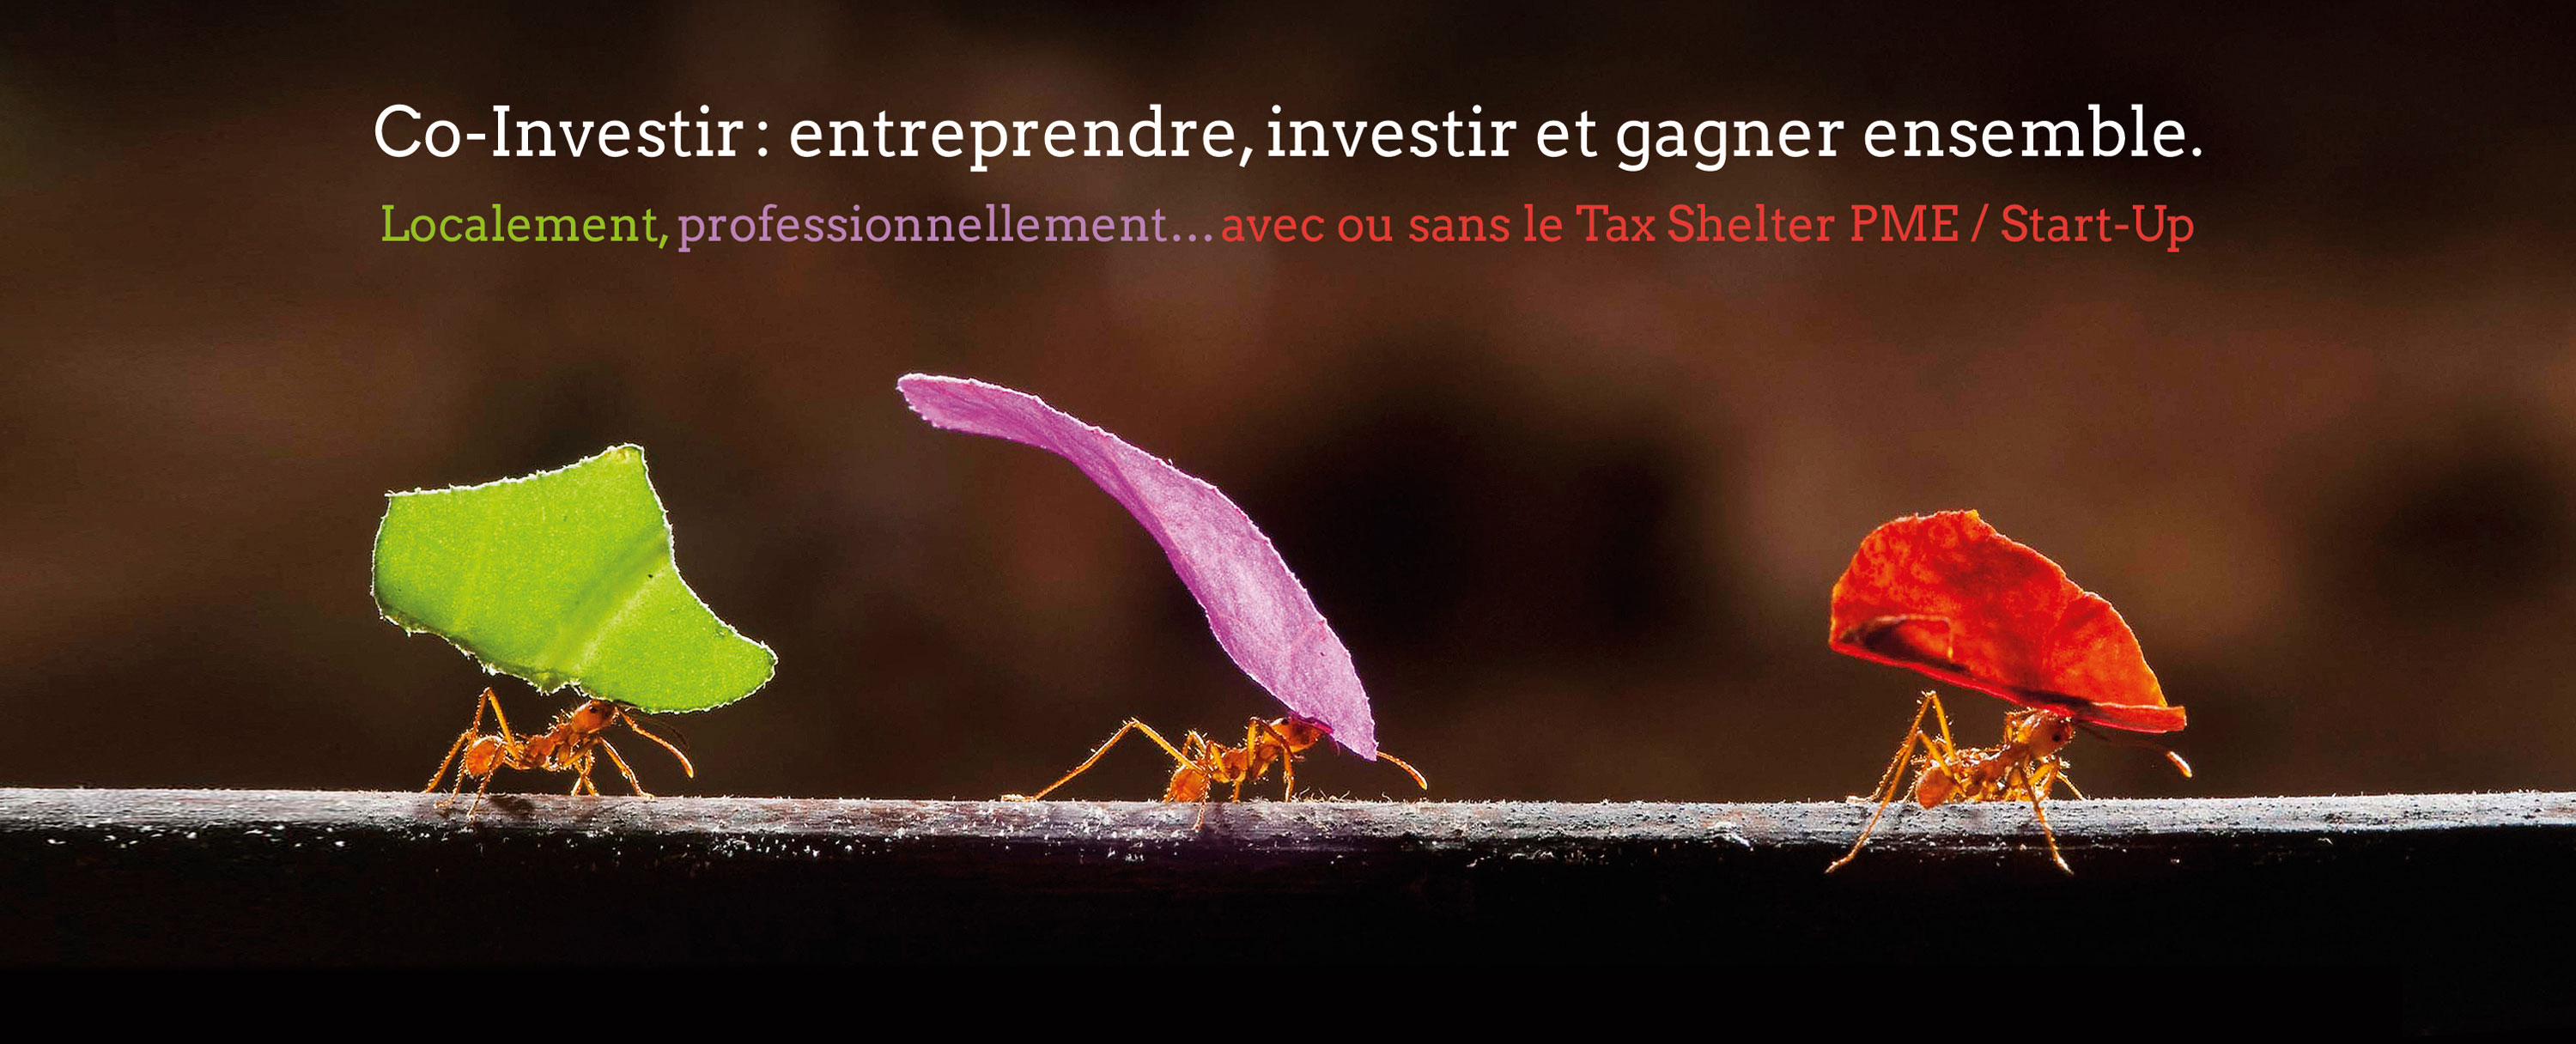 Co-investir, localement, professionellement